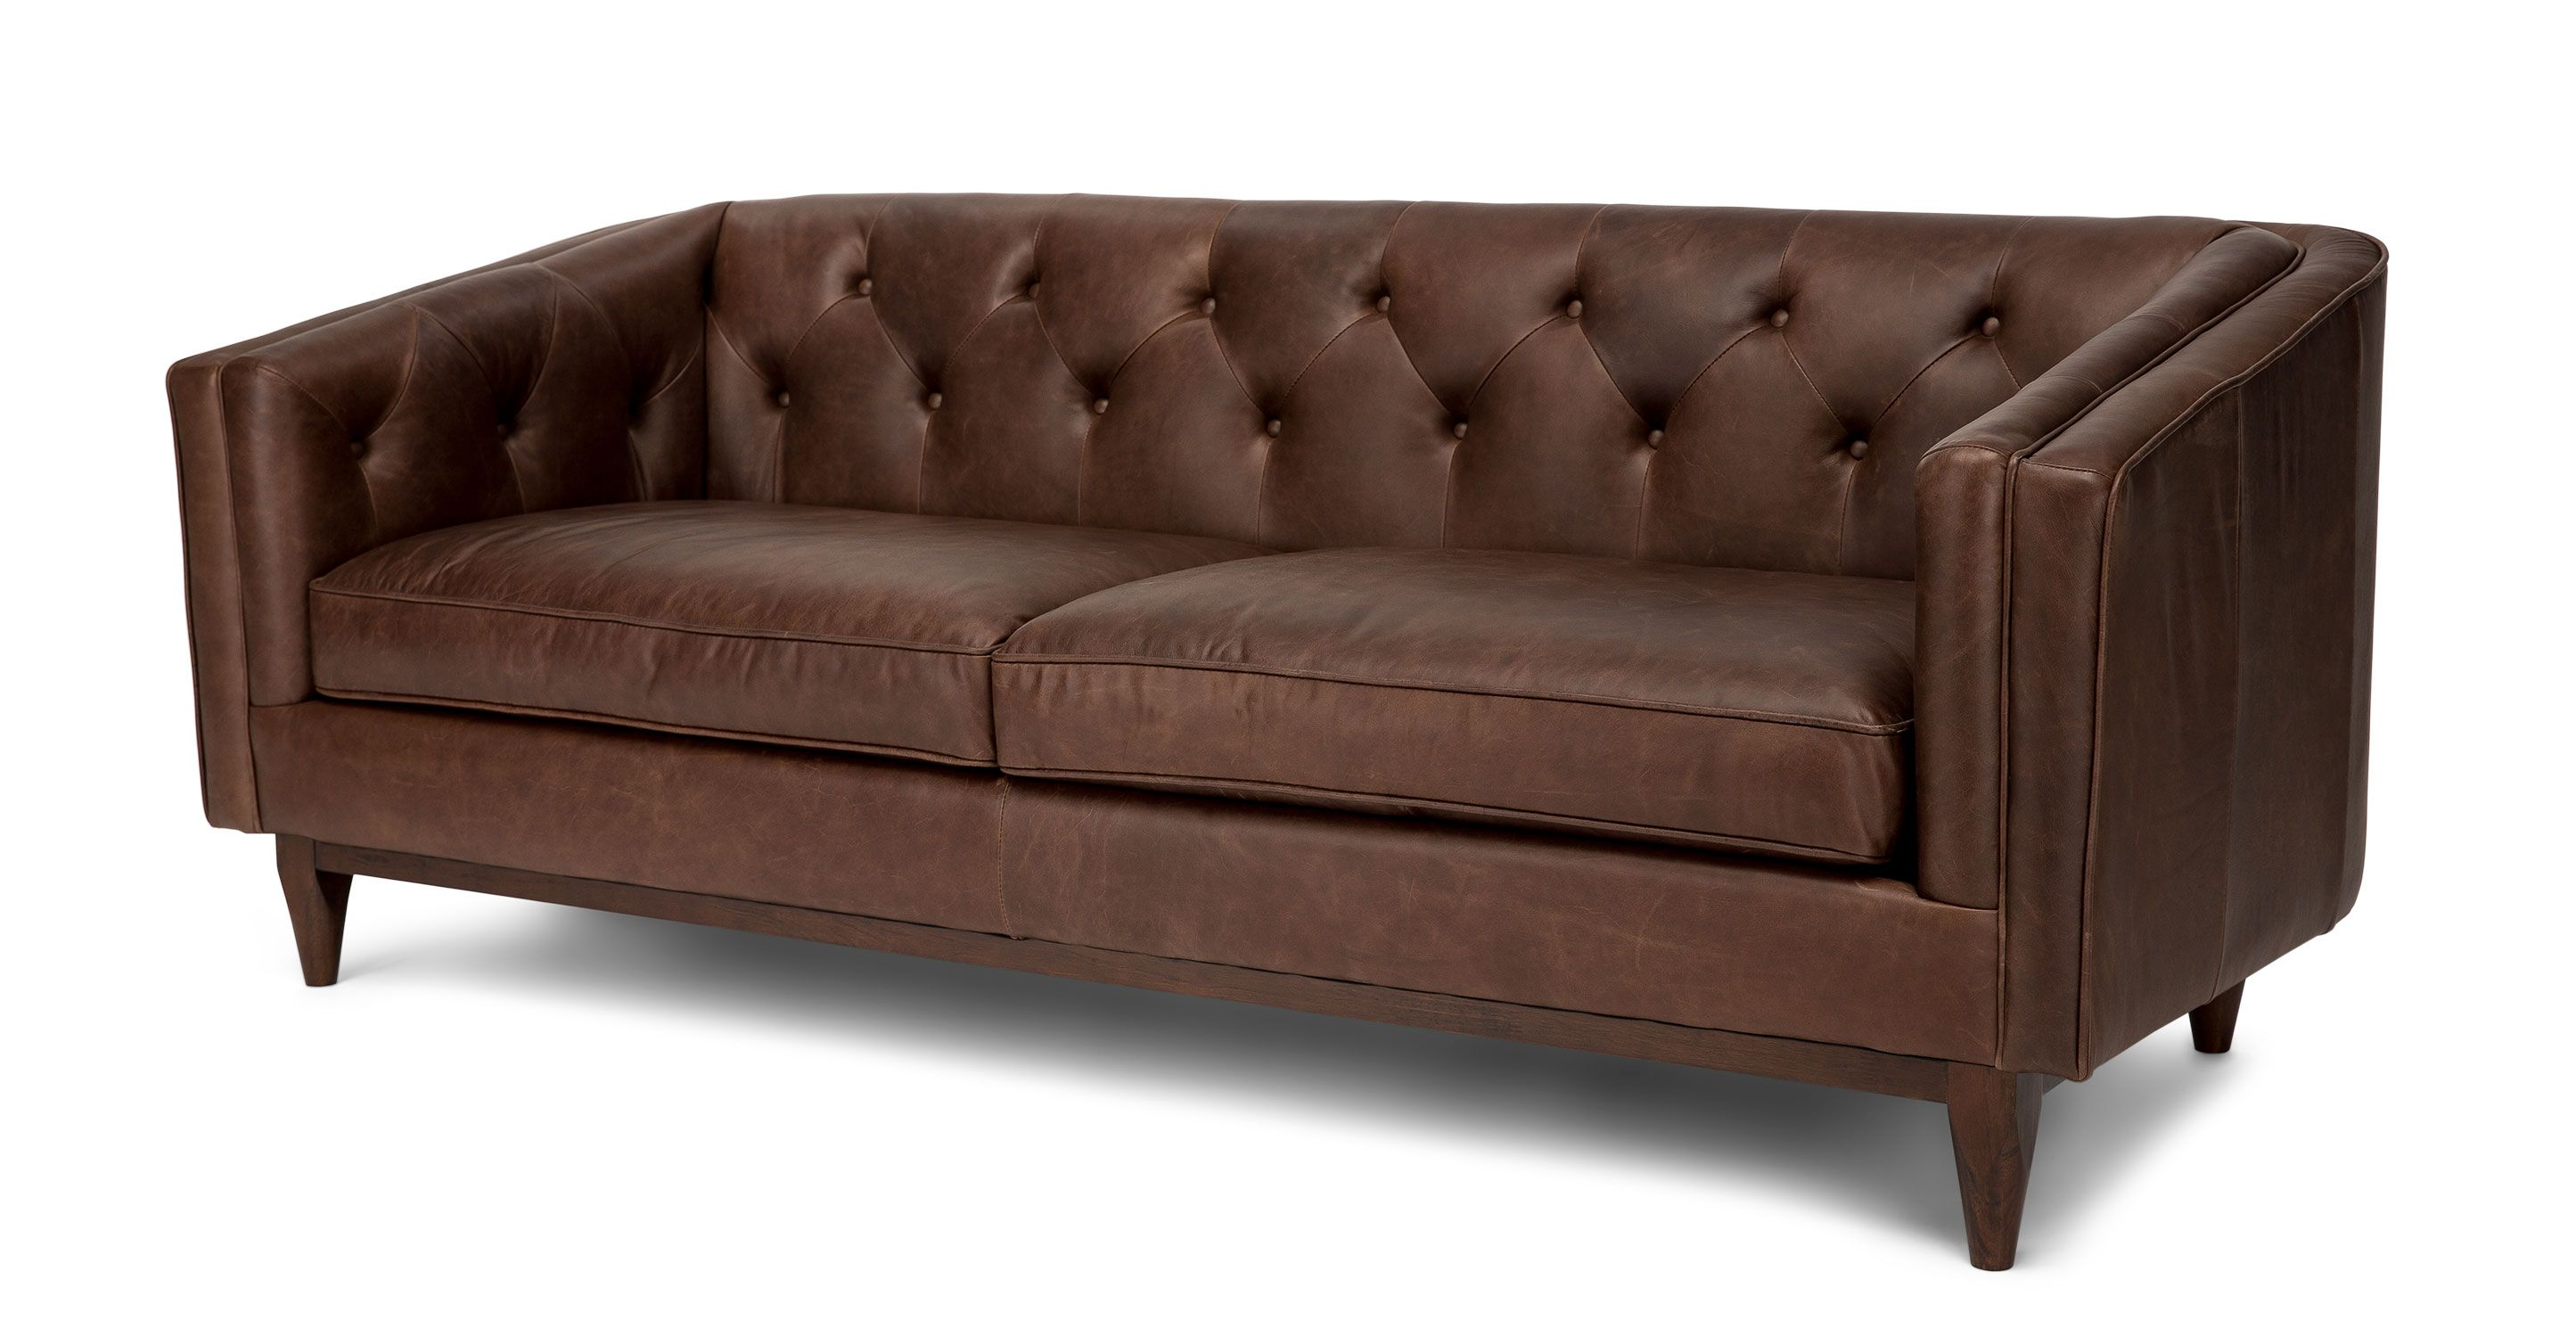 Alcott Charme Chocolat Sofa Sofa Black Leather Sofas Sofa Design